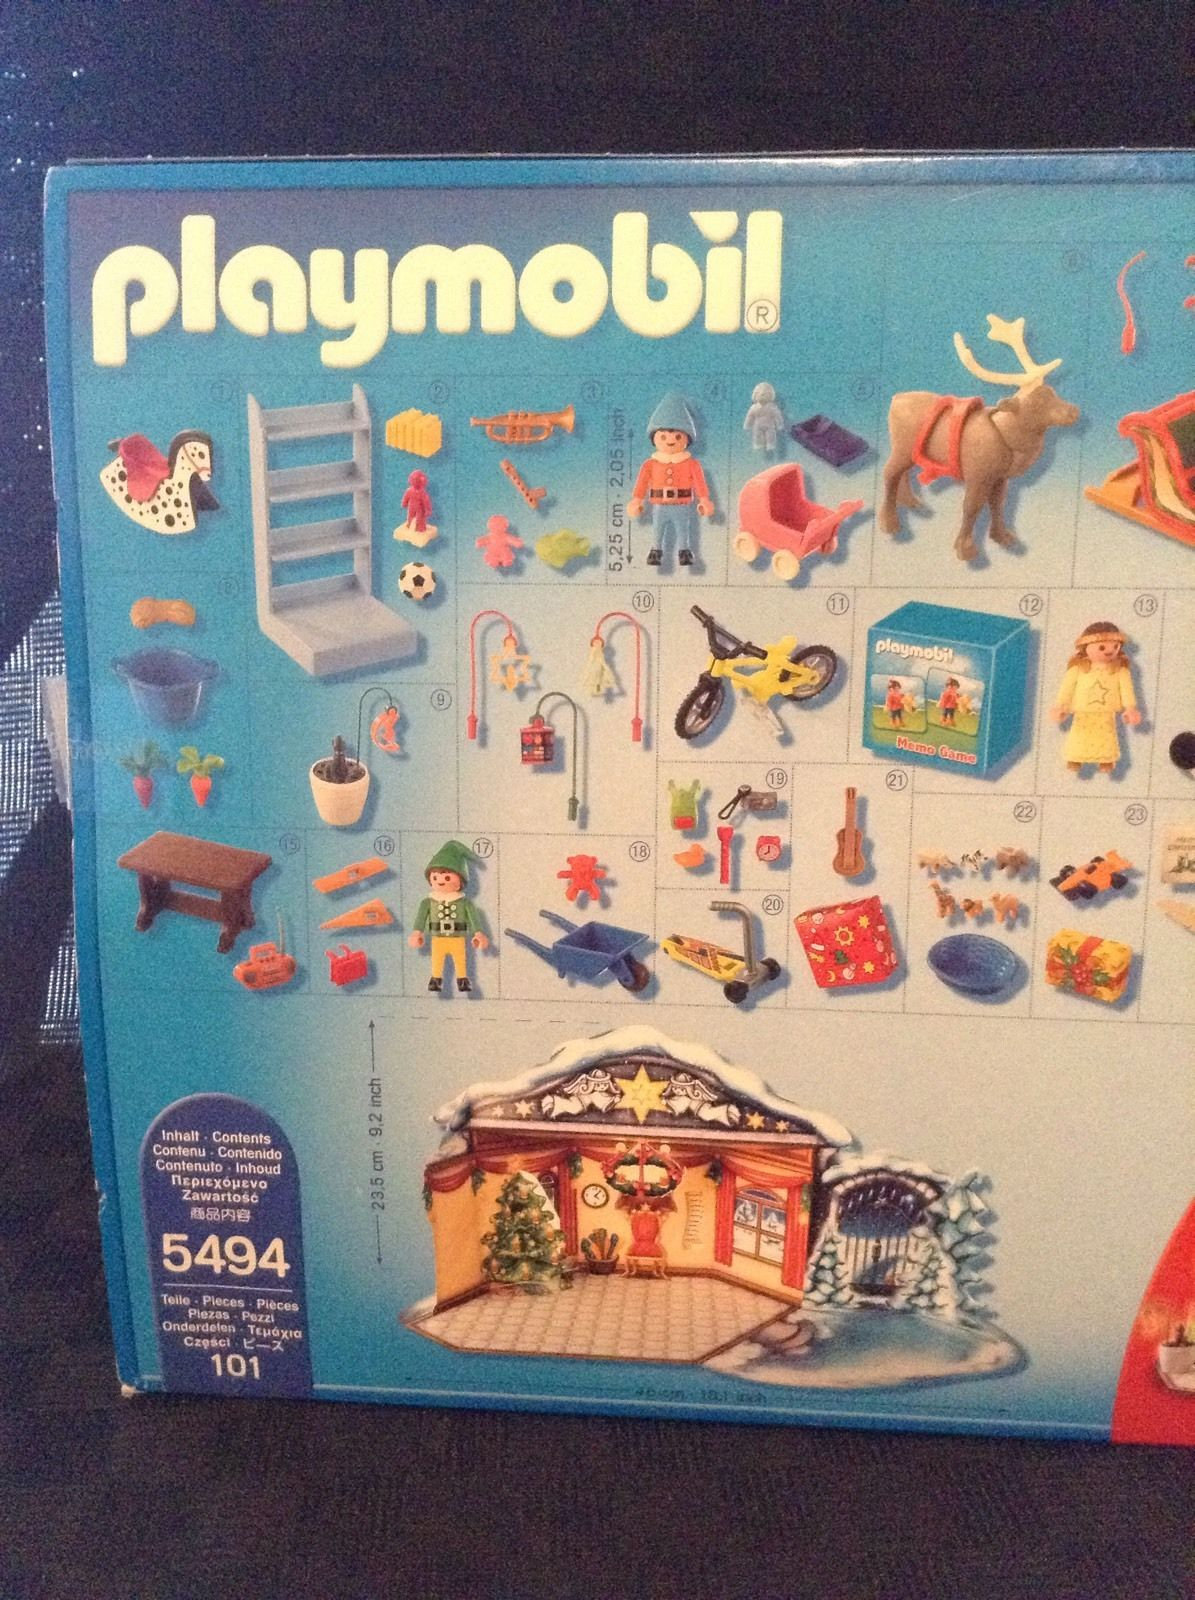 New Playmobil Santa's Workshop 5494 Advent Calender 101 Pieces Building Set Toy